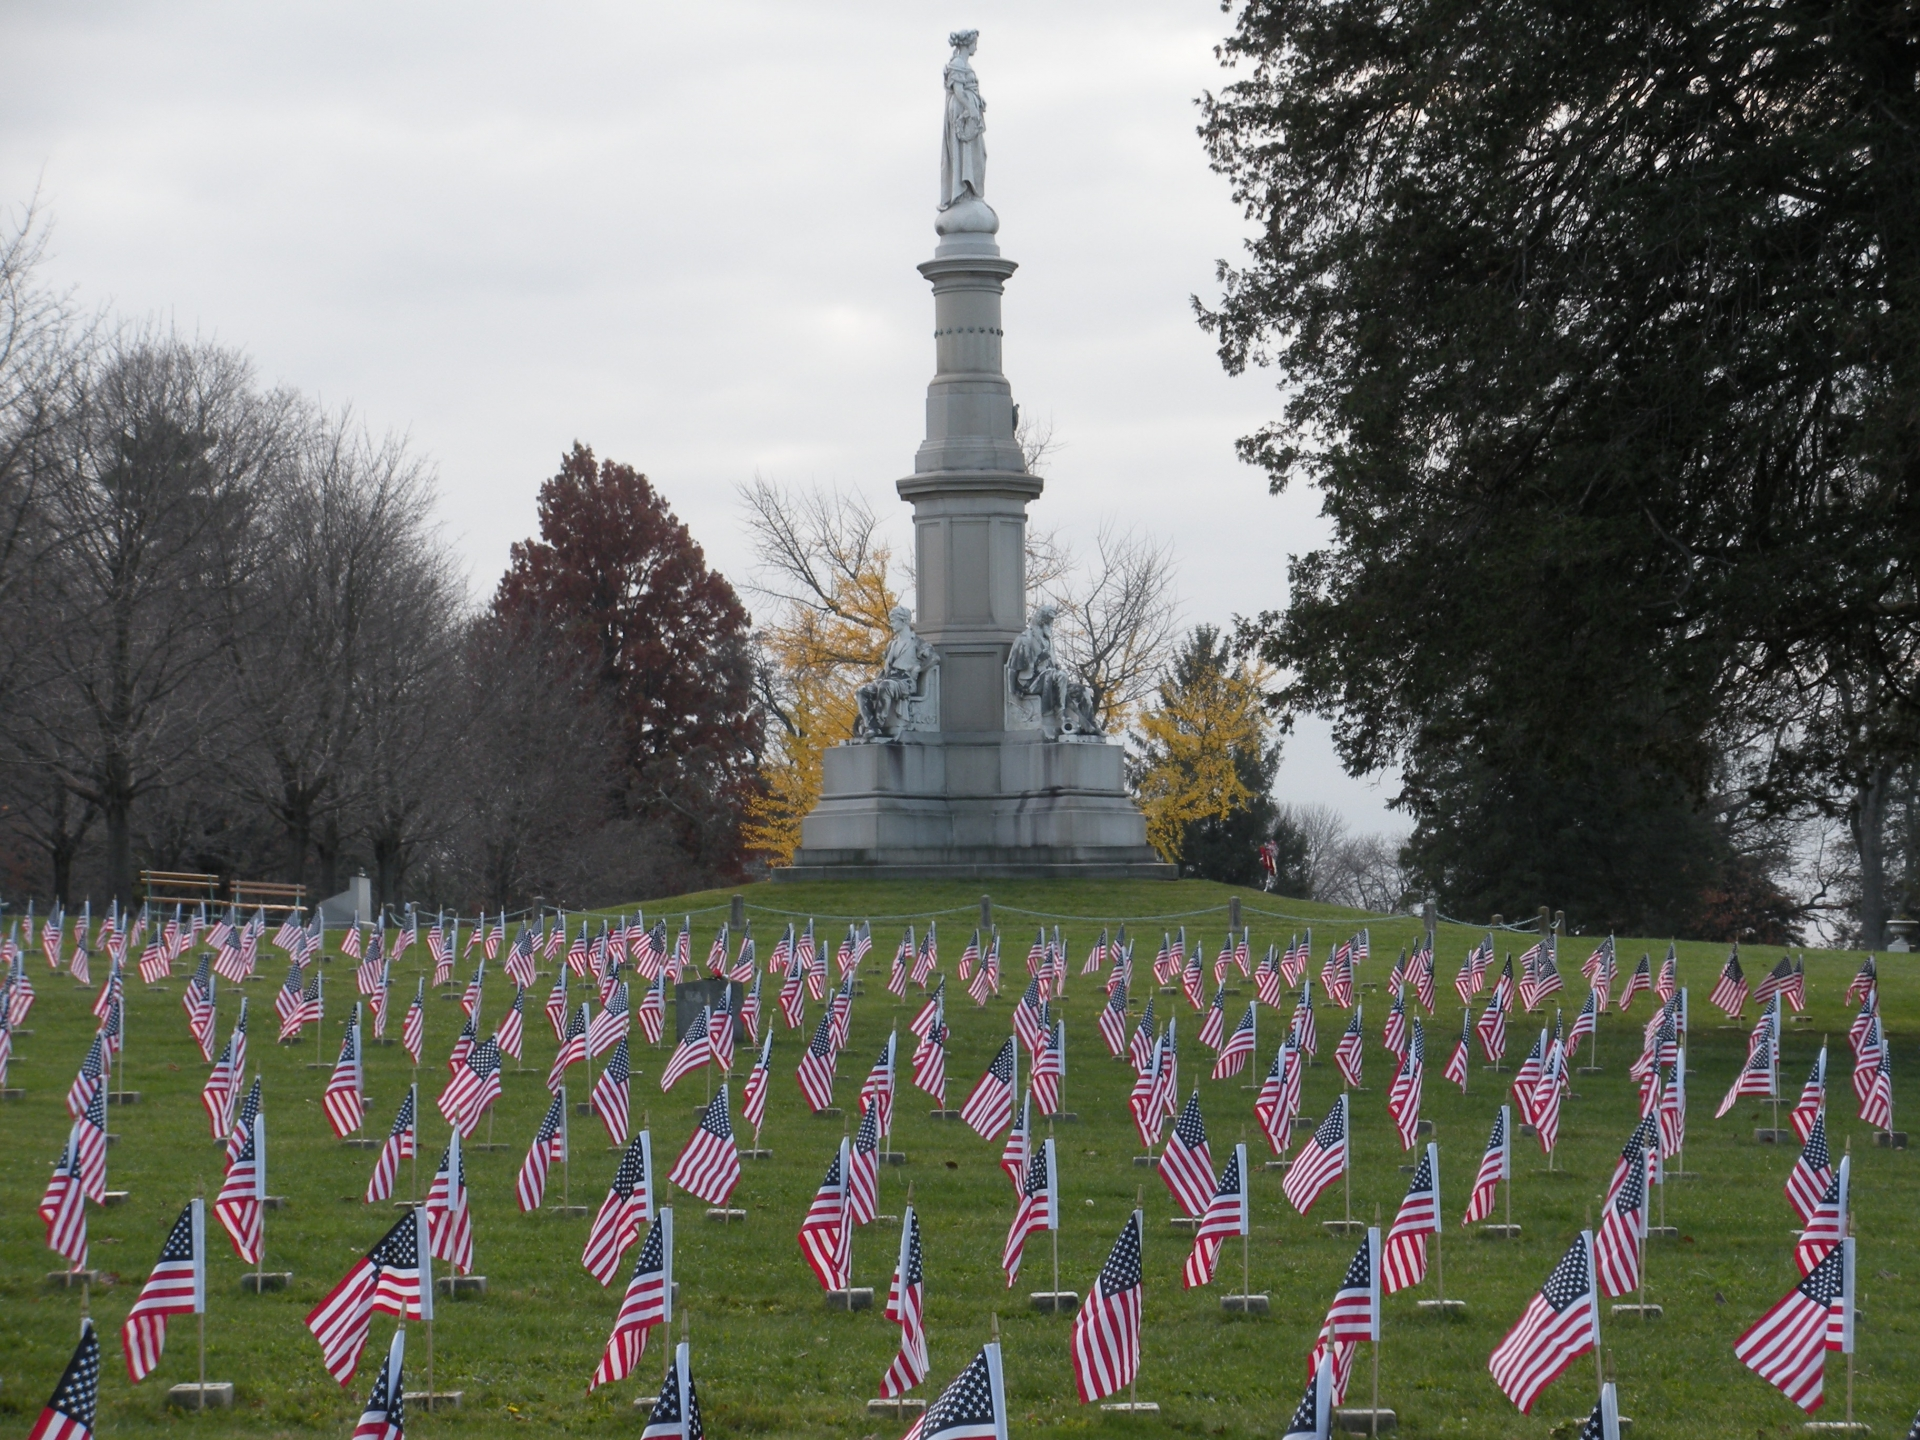 Hundreds of small American Flags, one for each grave at the base of an elaborate memorial pillar